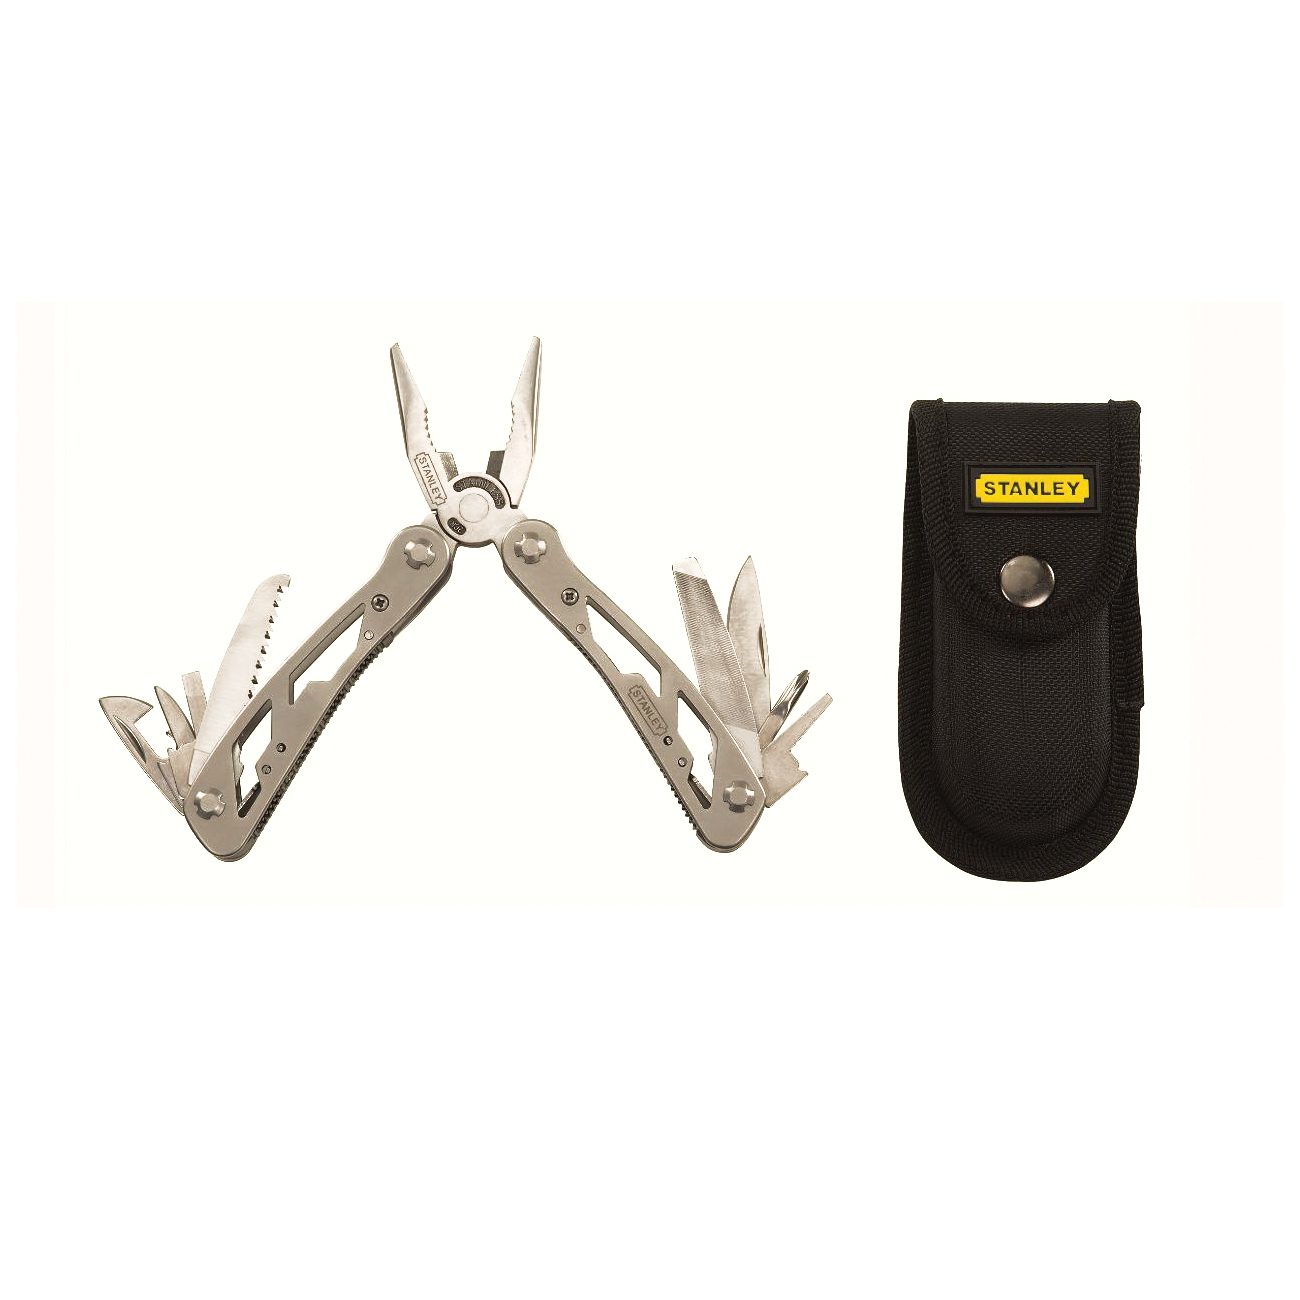 Stanley® 84-519K 12-in-1 Multi-Tool With Nylon Holster, Plier, 12 Tools, 12 Functions, 4-1/4 in L Closed